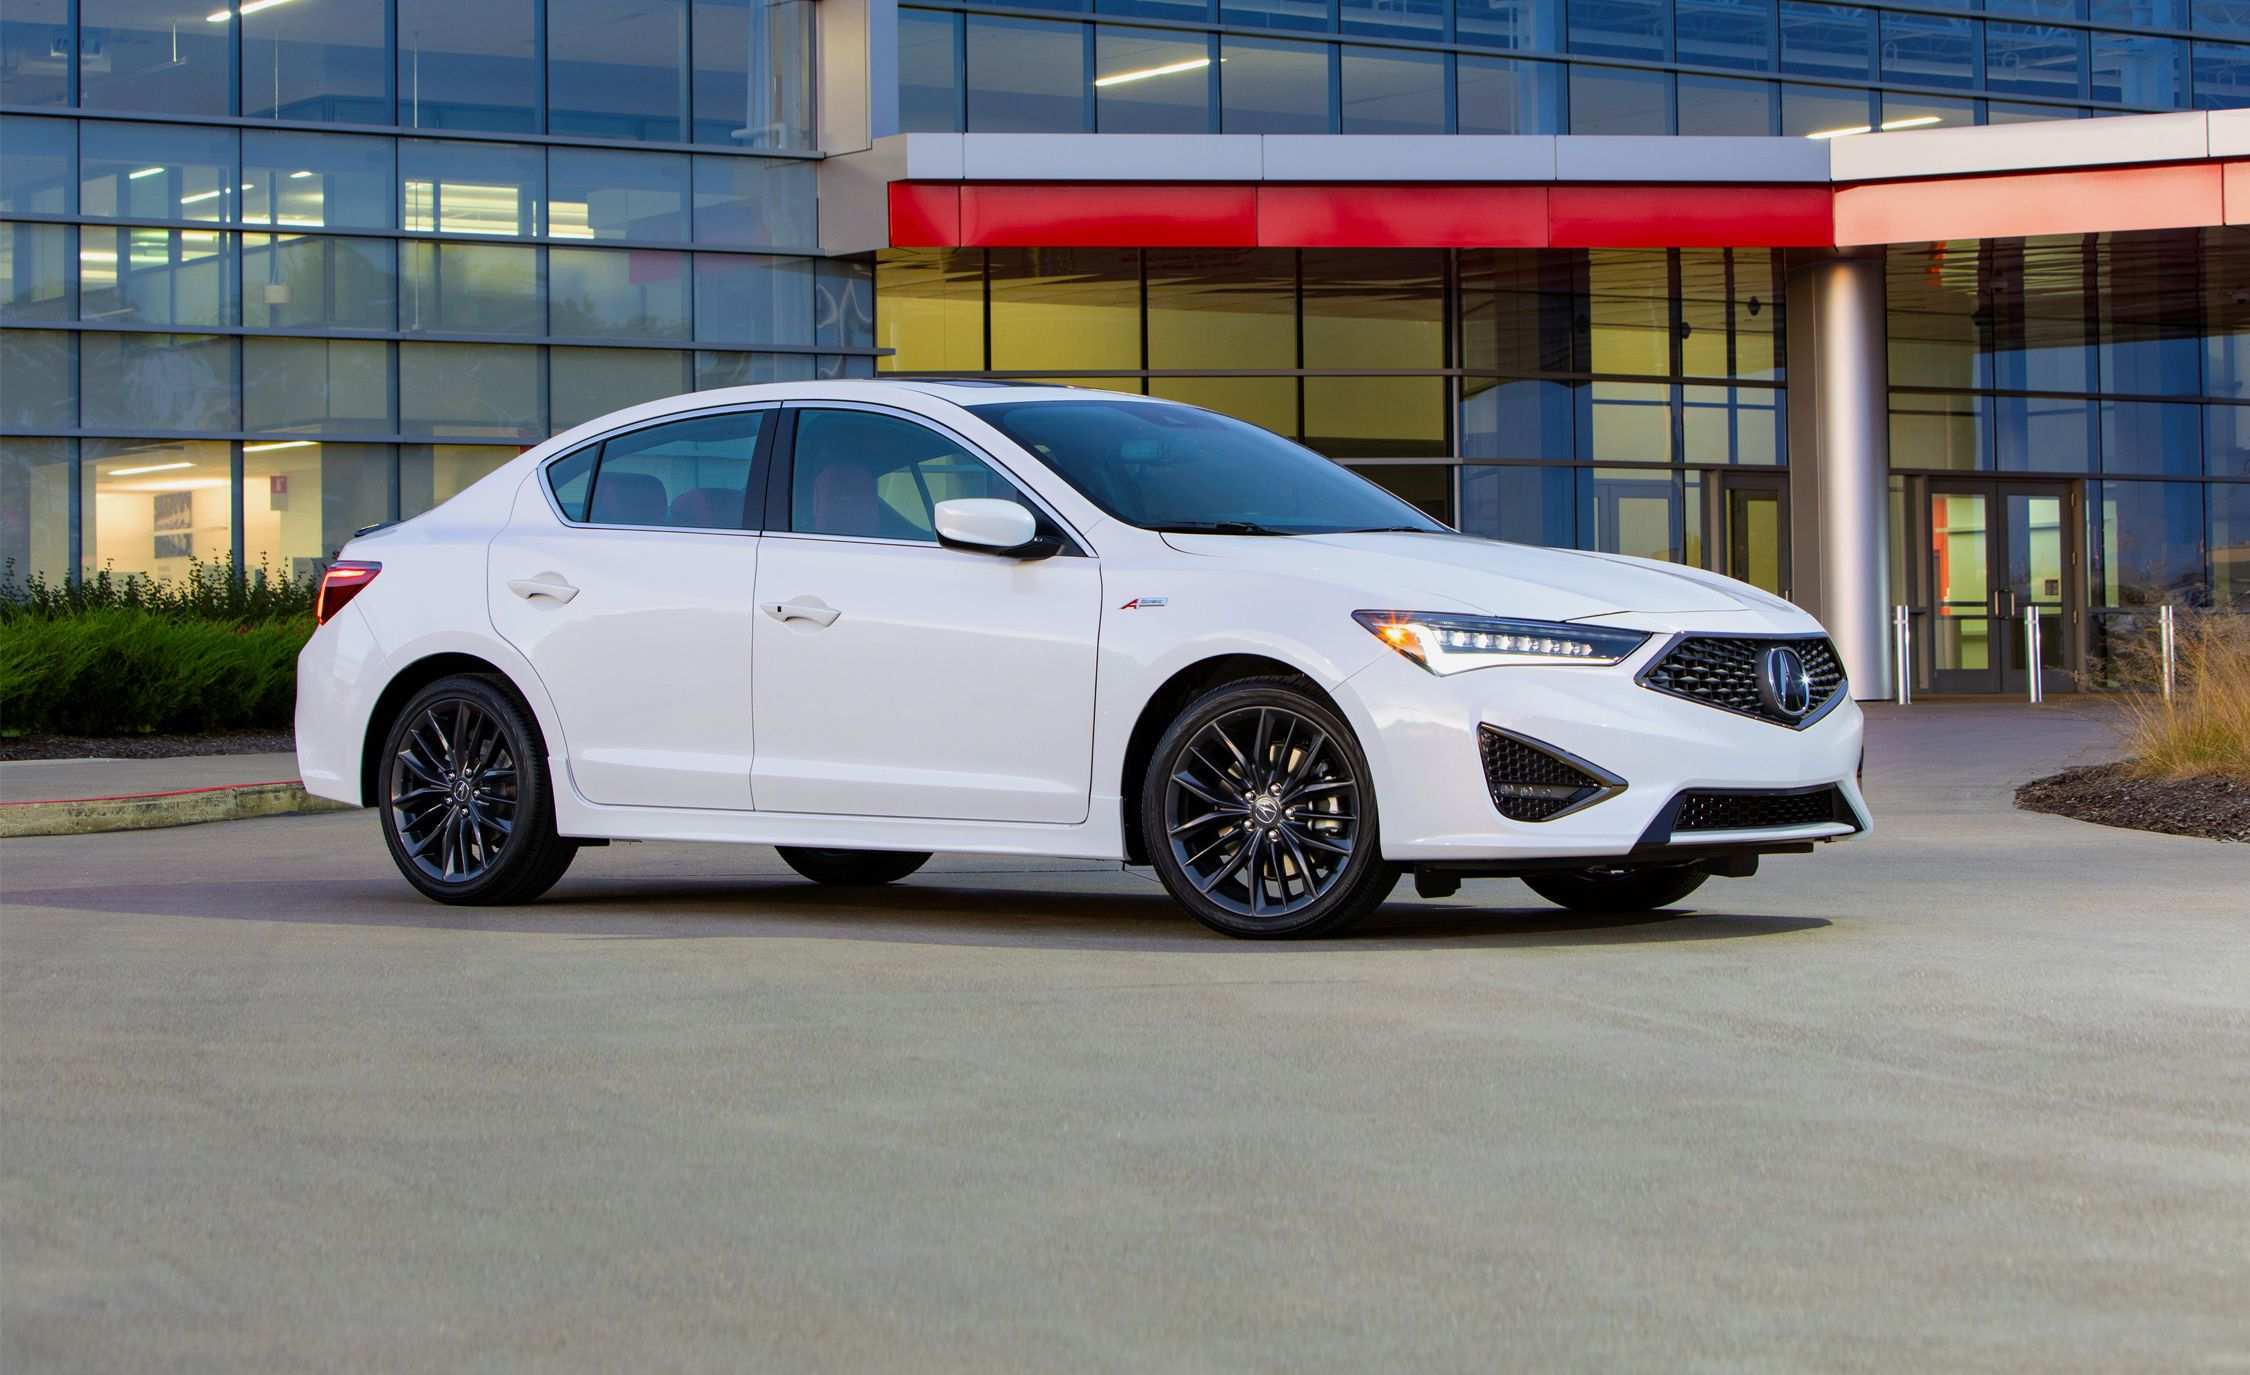 66 Best Review 2019 Acura Ilx Redesign Photos with 2019 Acura Ilx Redesign